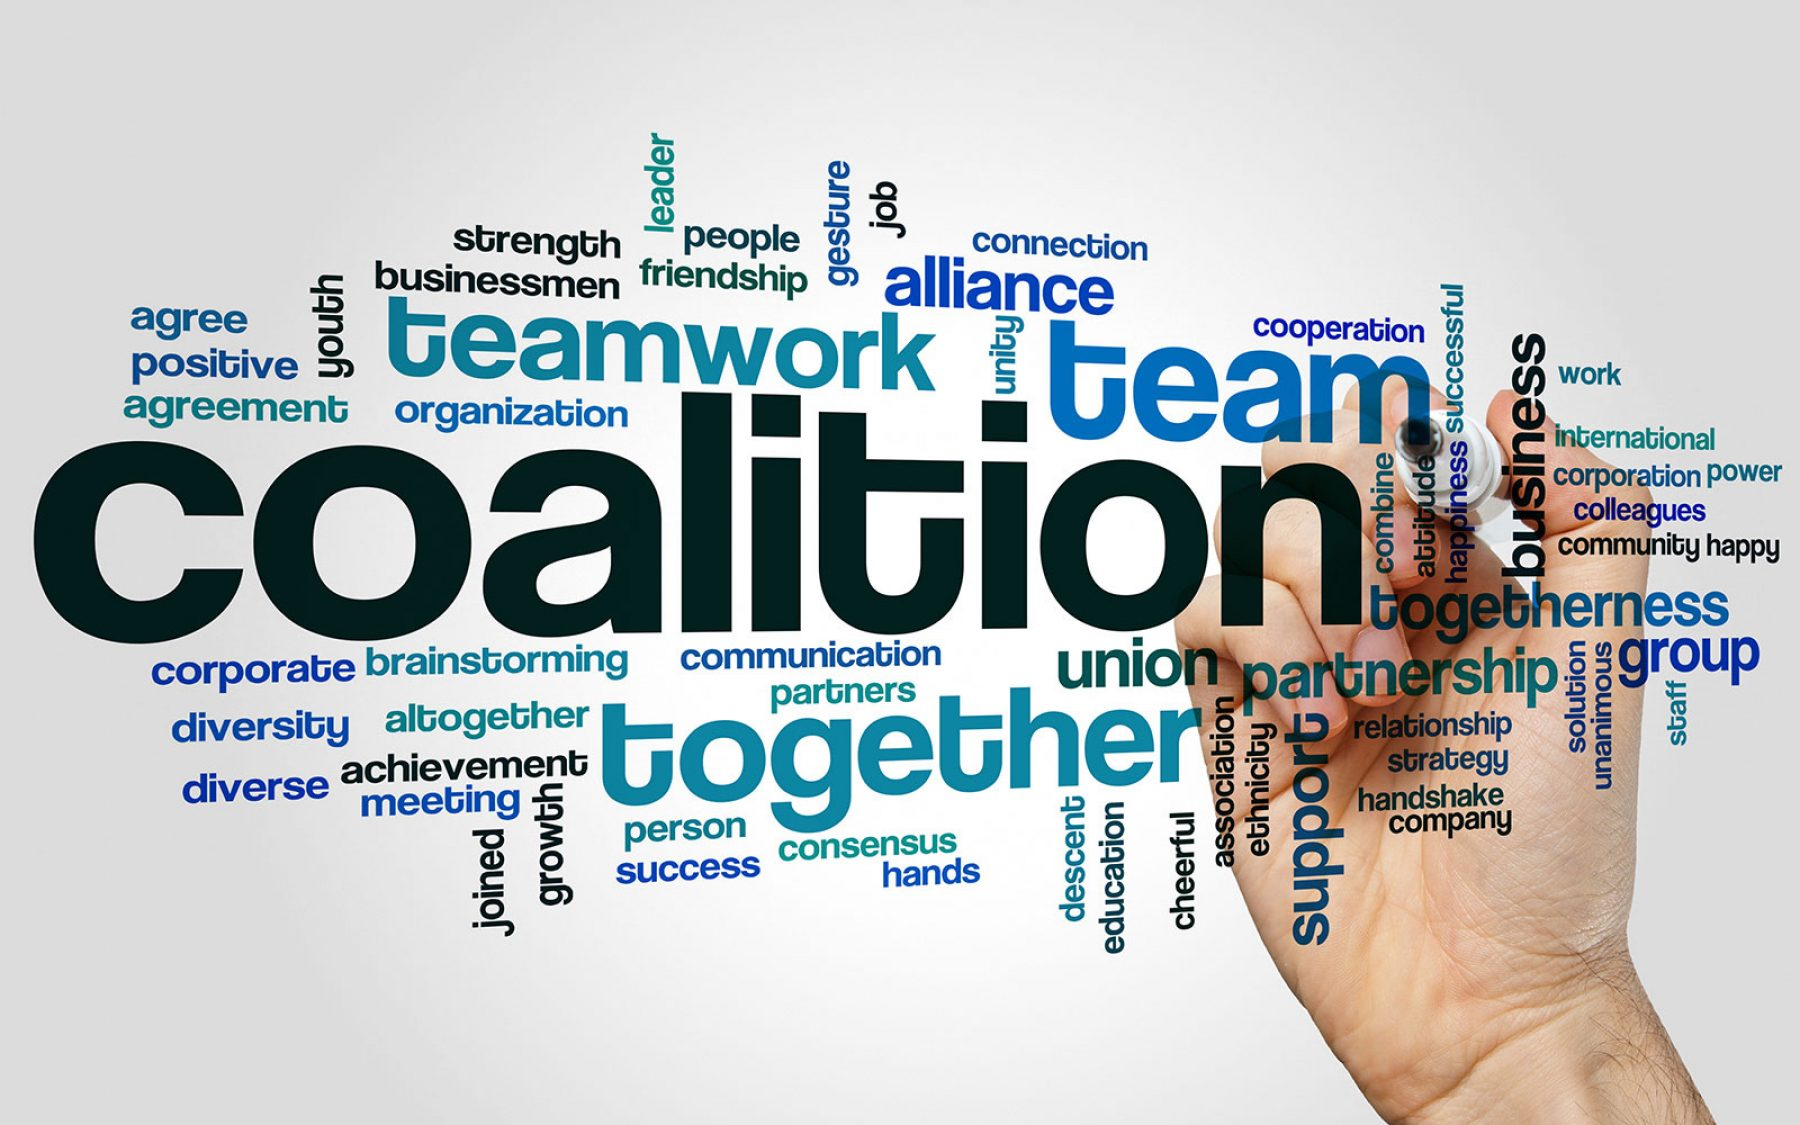 Word cloud featuring words related to a coalition. Largest words featured are coalition, team, teamwork, together, partnership, and alliance.